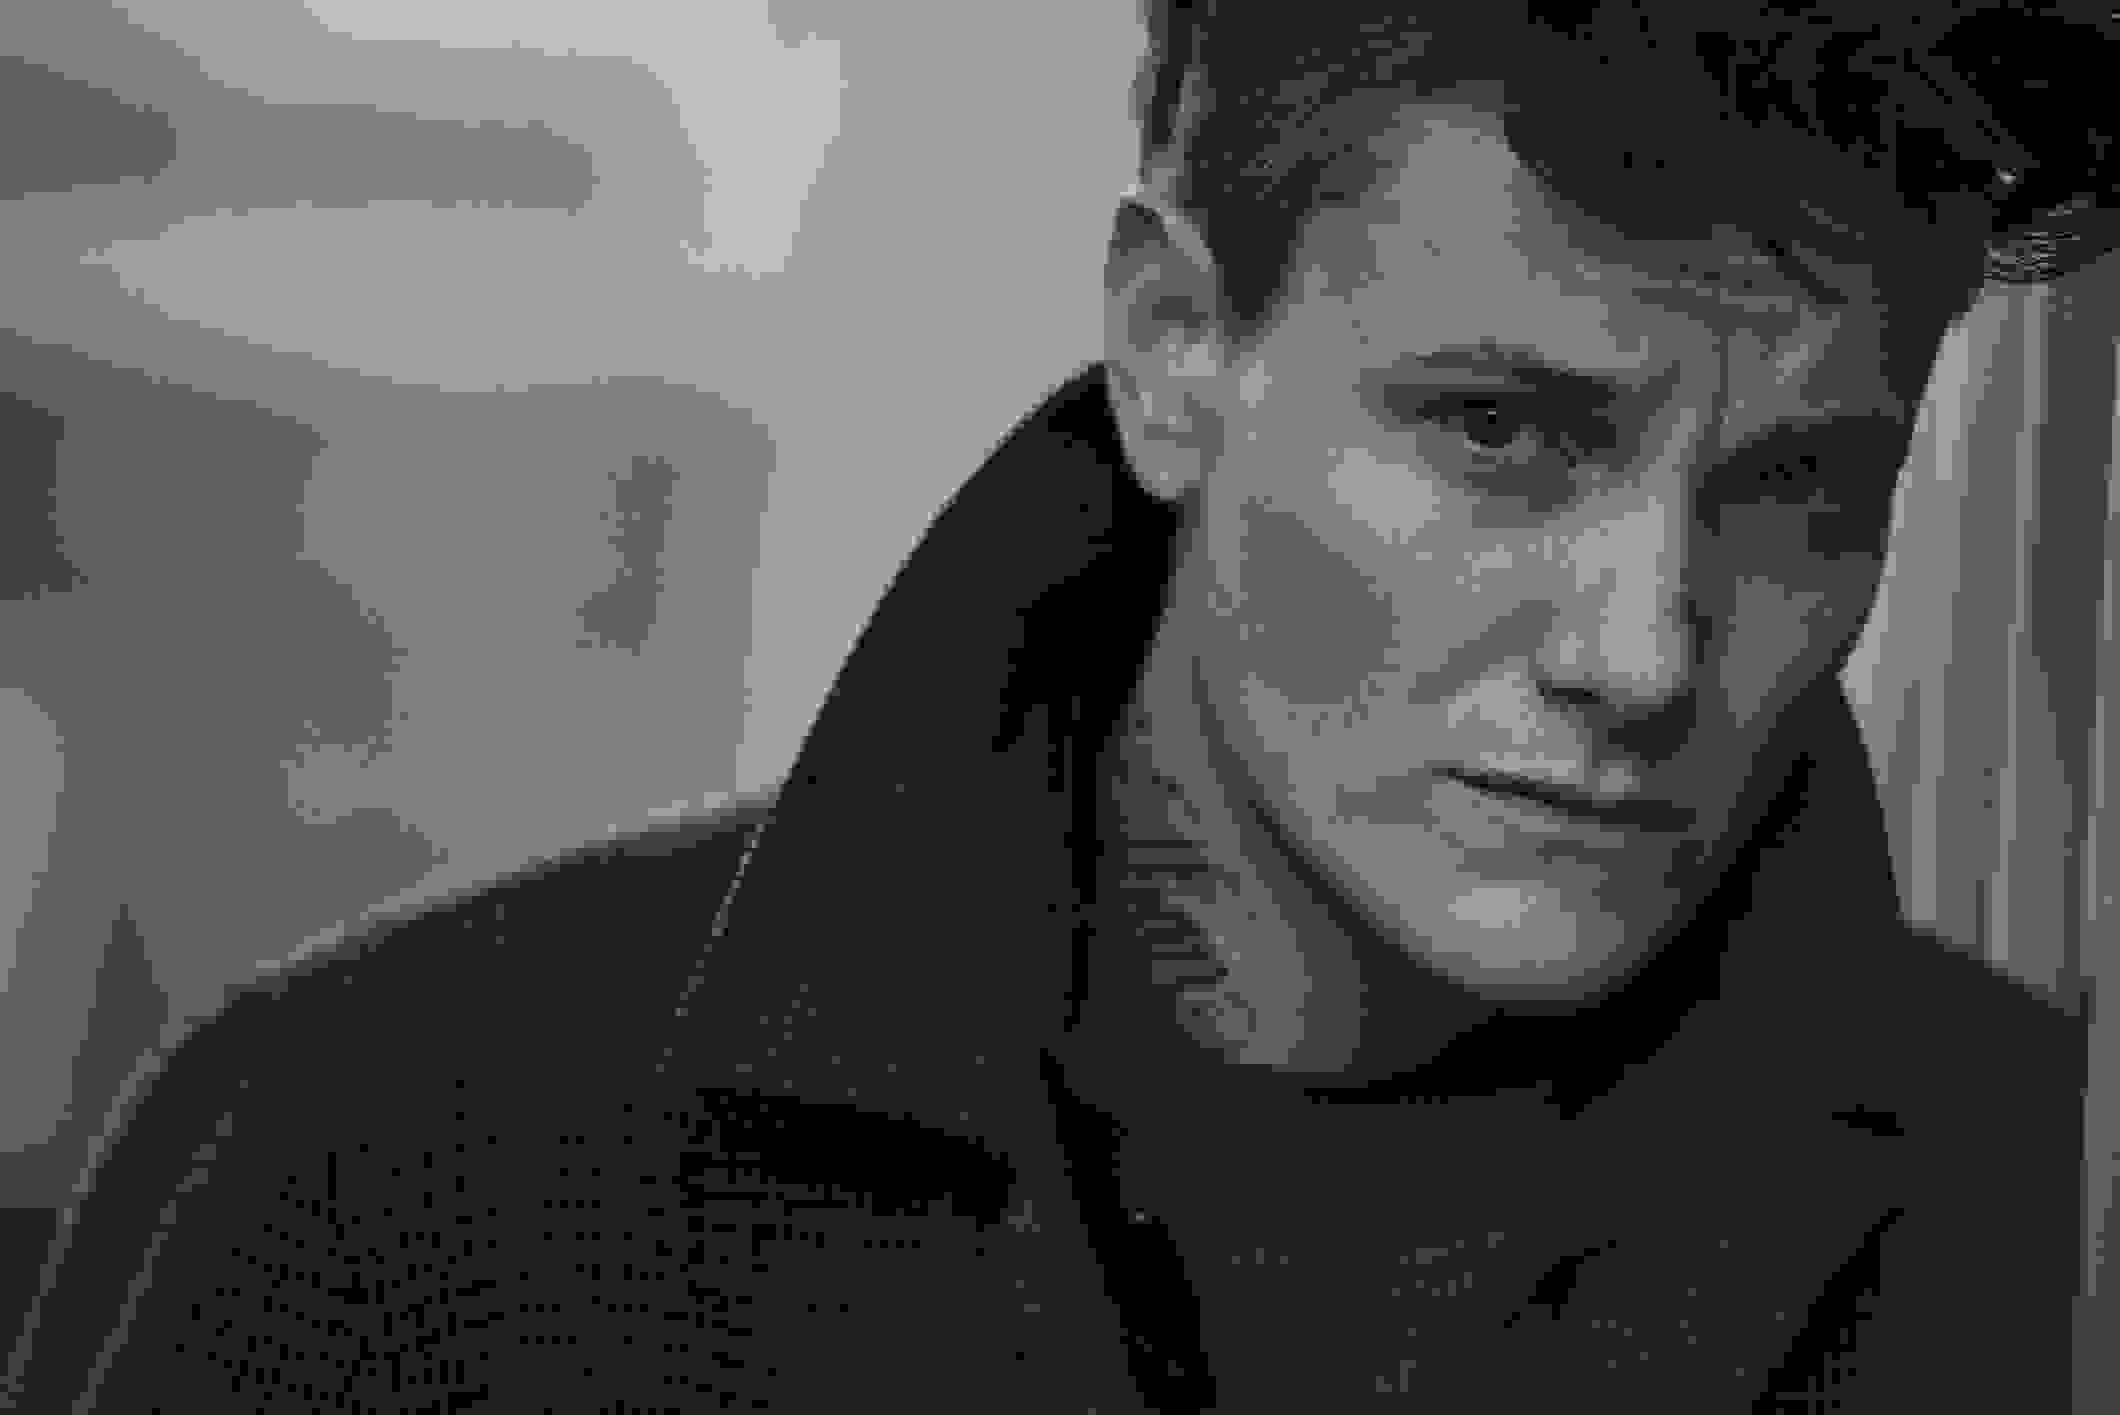 Casey Legler: Developing Your Own Creative Practice